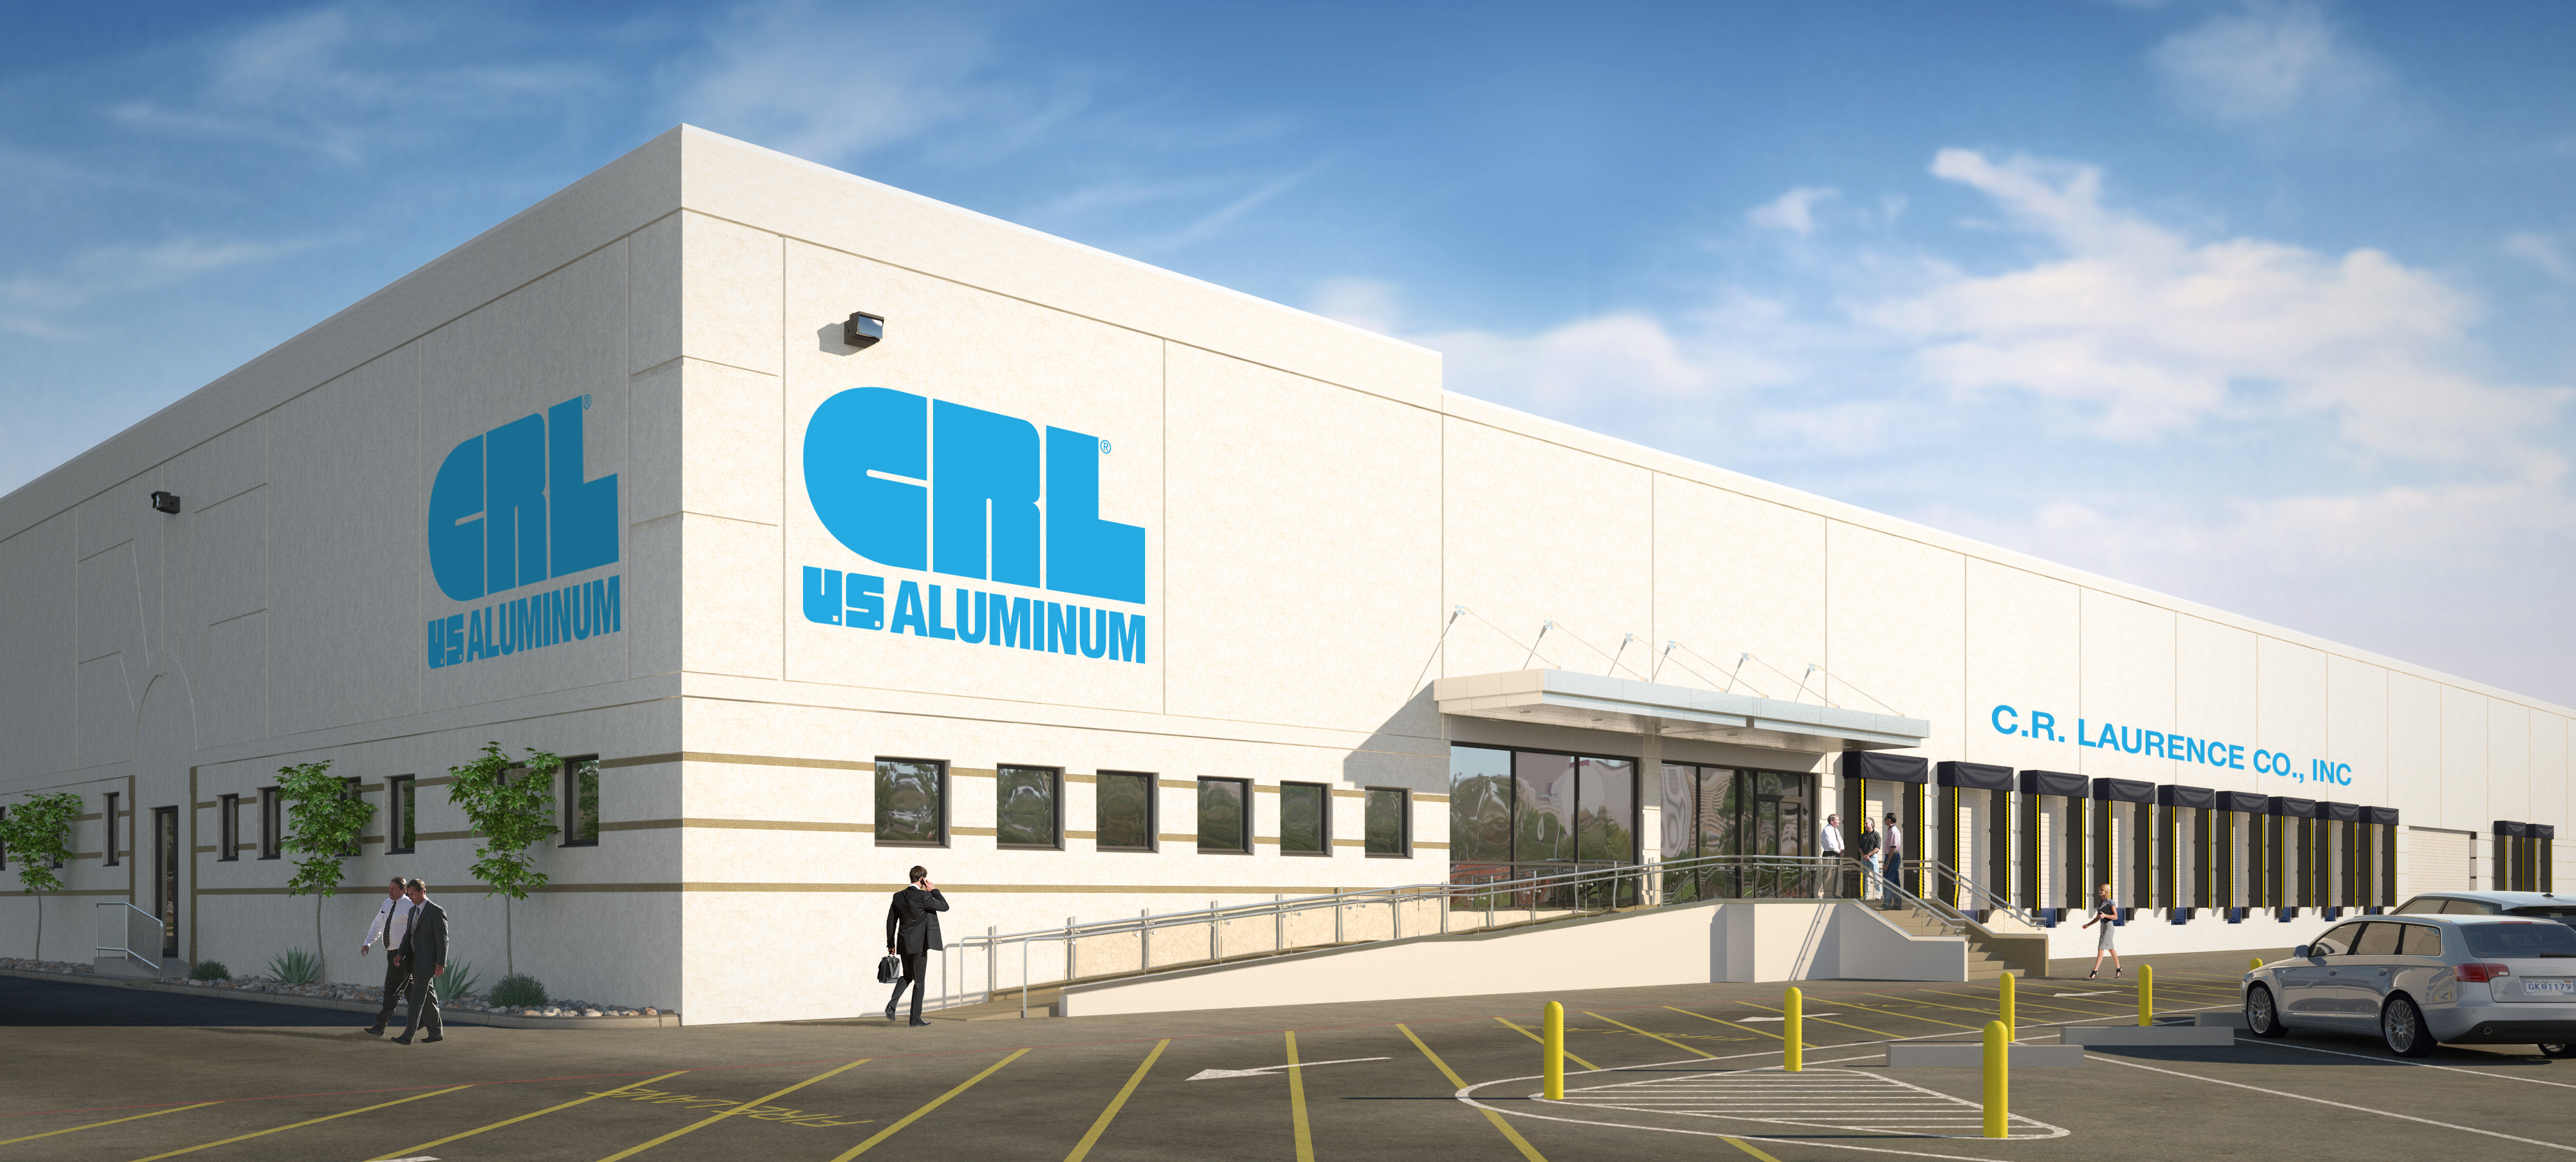 C.R. Laurence Continues North American Expansion Plans, Targeting ...